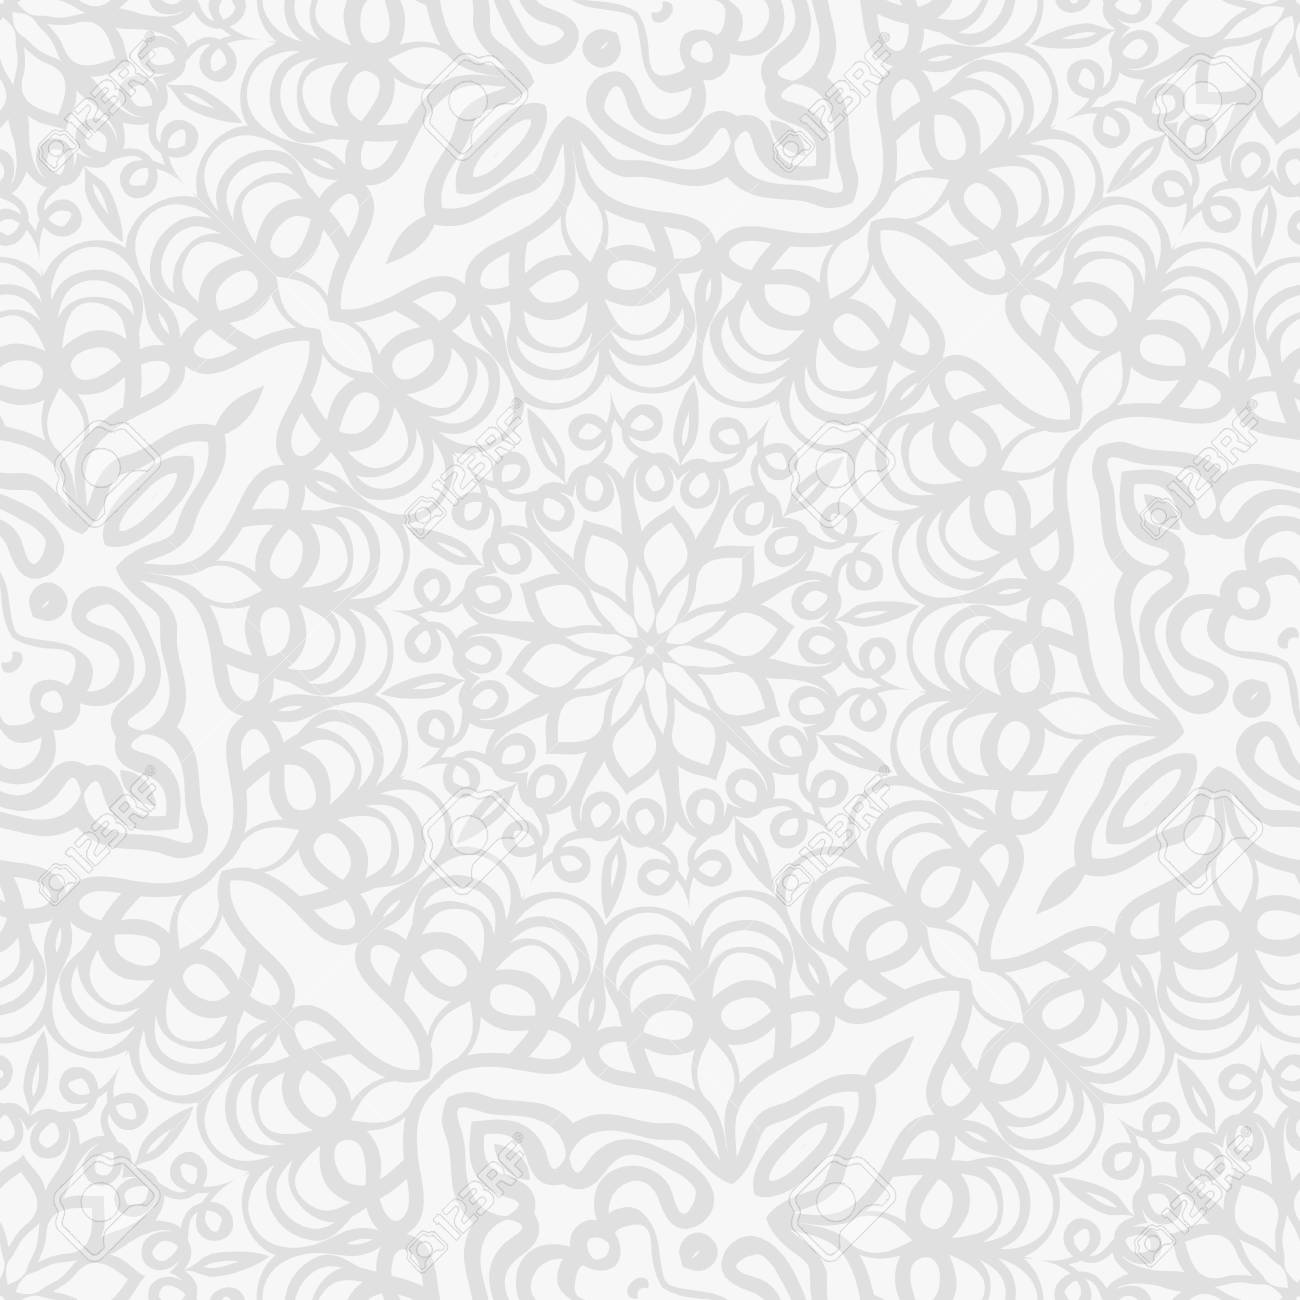 Background For Wedding Invitation Card With Henna Mehndi Floral